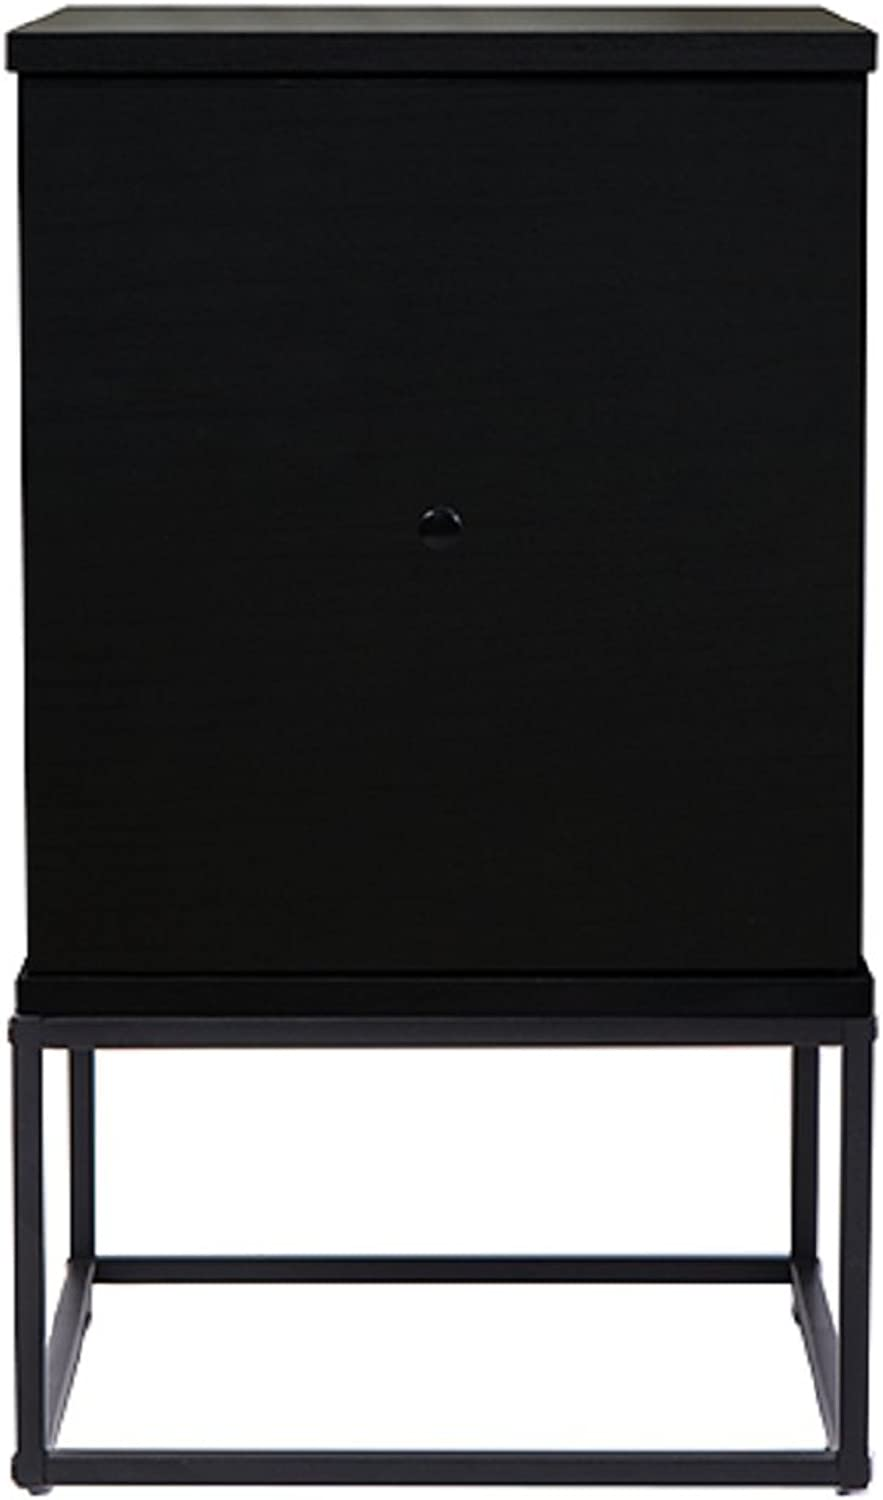 Gordon Bedside Table W 2 Drawer LAMP Bed Side Storage Unit NIGHTSTAND Black